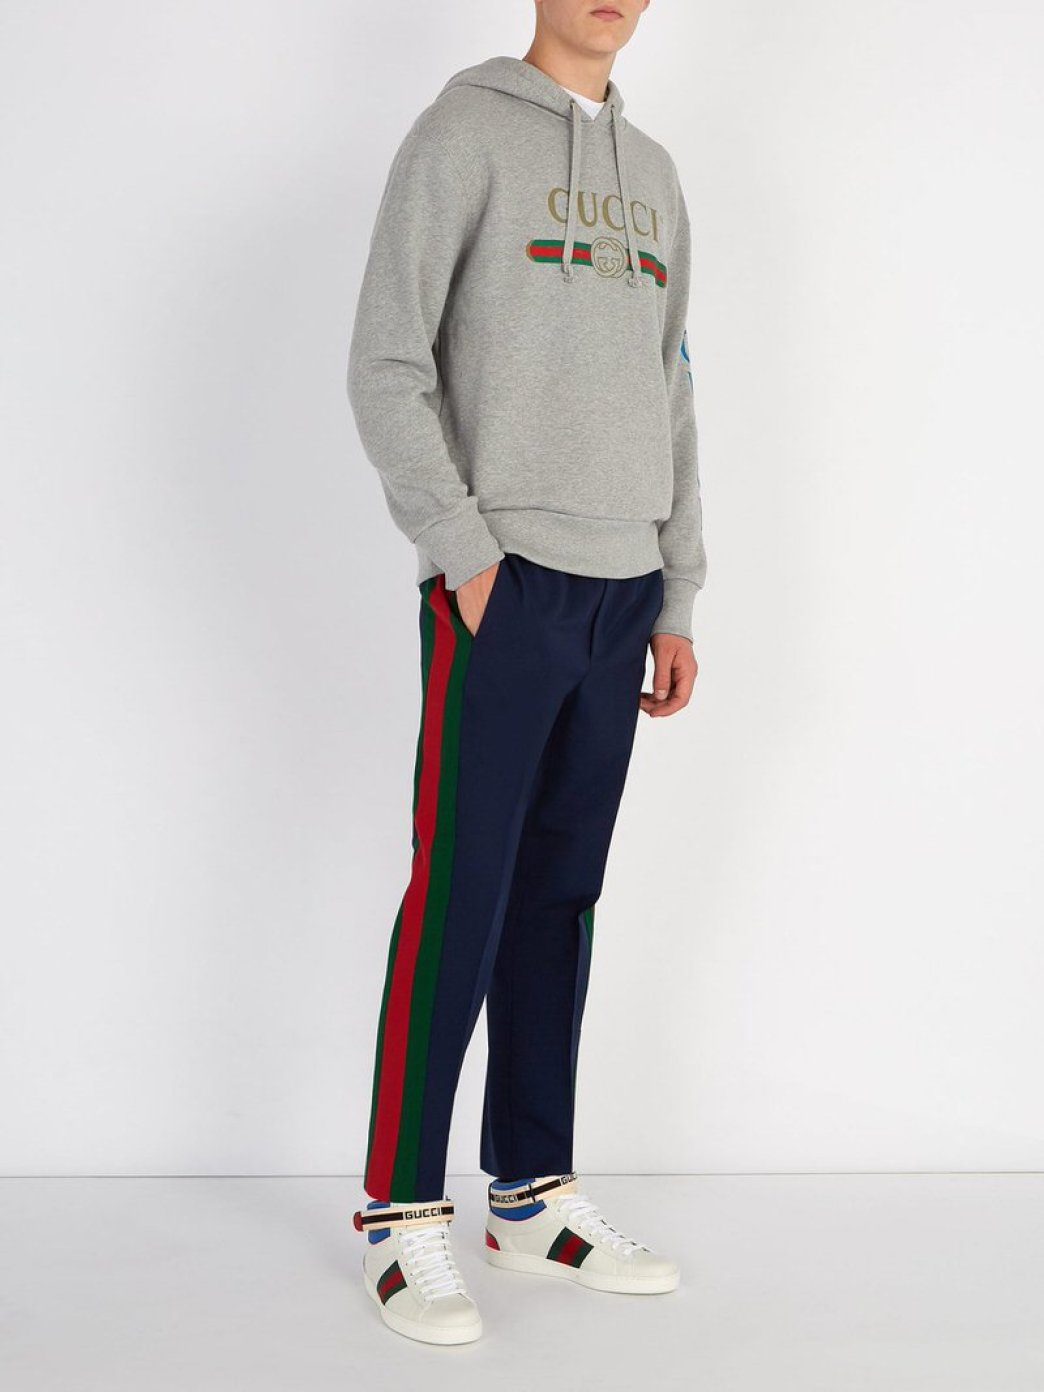 Gucci Ace High-Top